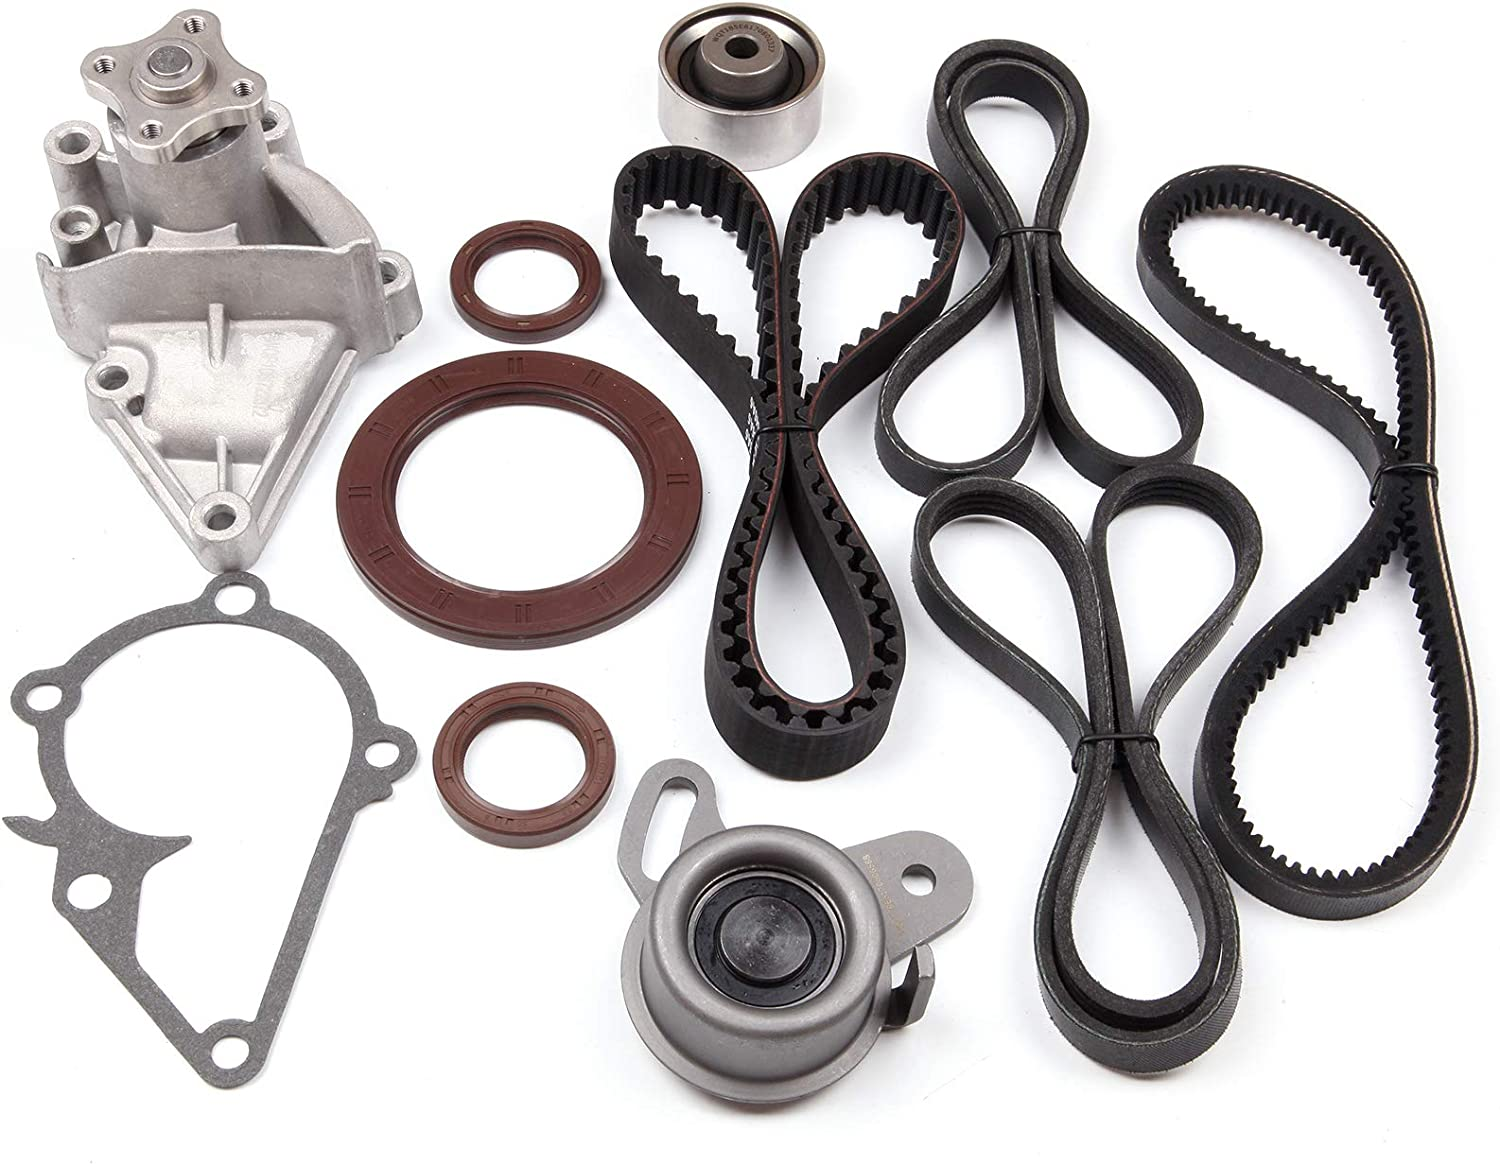 LSAILON Timing Belt Kits Replacement for 2001-2011 Hyundai Accent